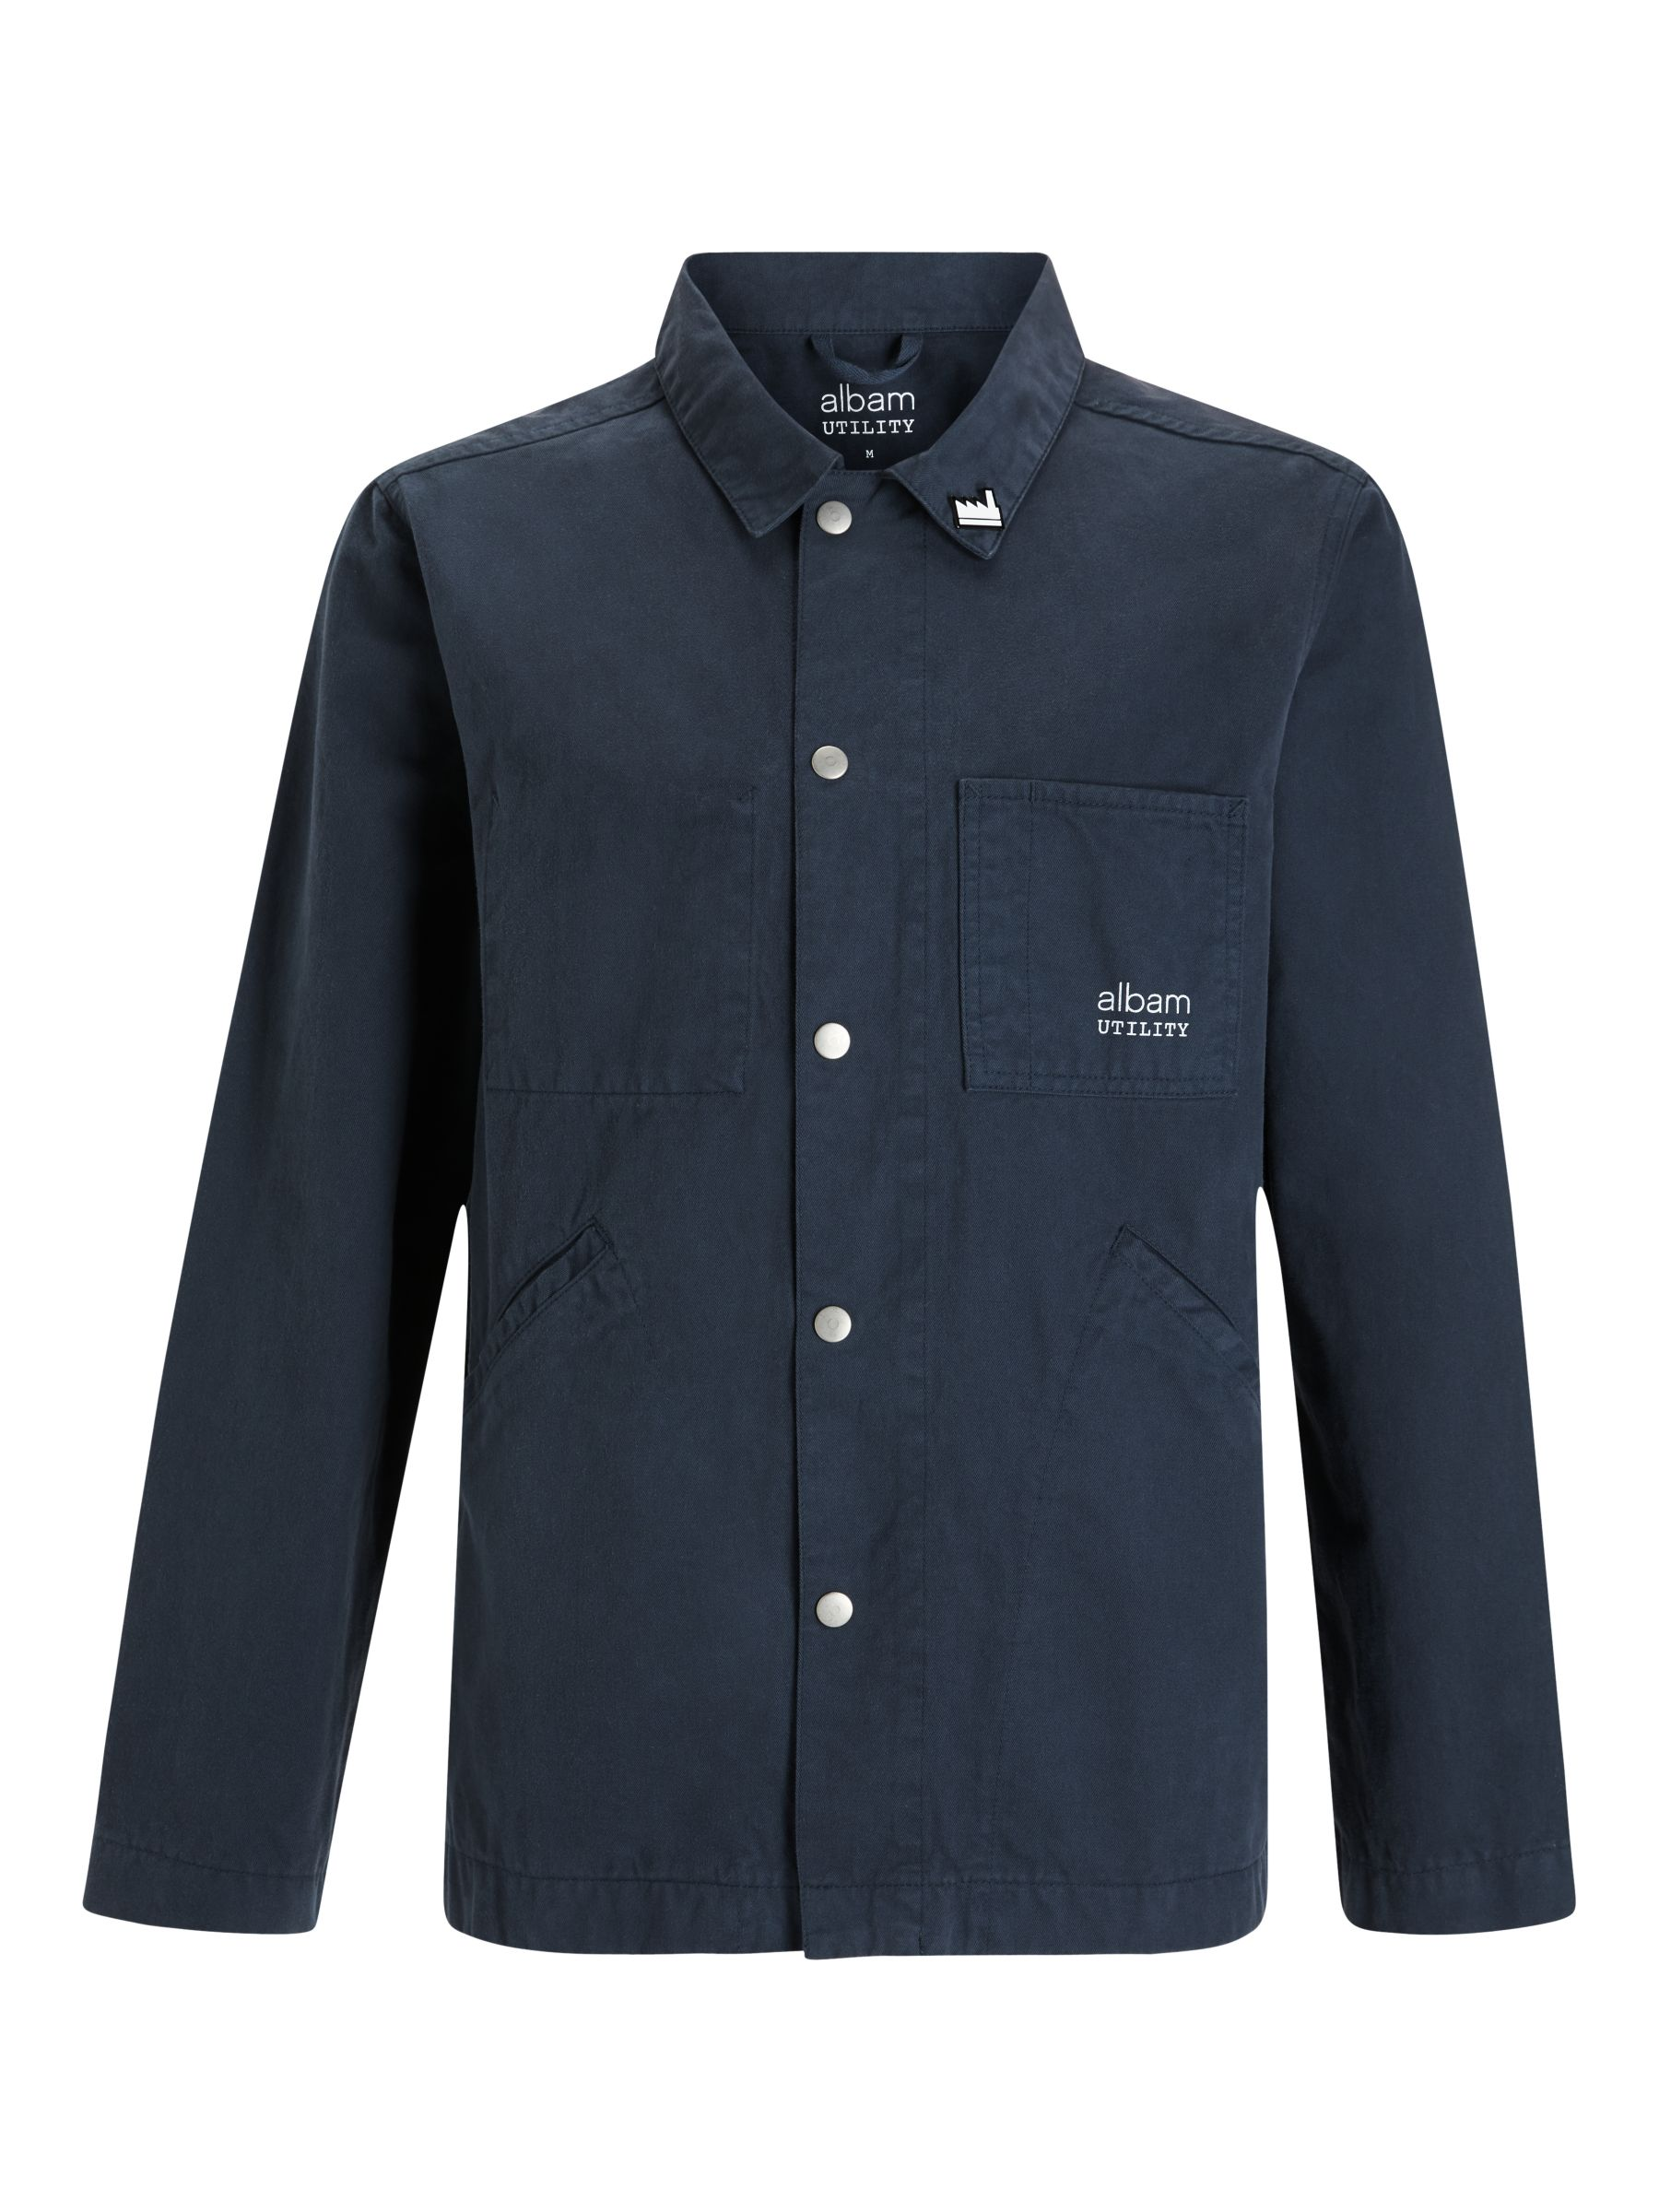 Buy Albam Utility Cotton Factory Work Jacket, Navy, S Online at johnlewis.com